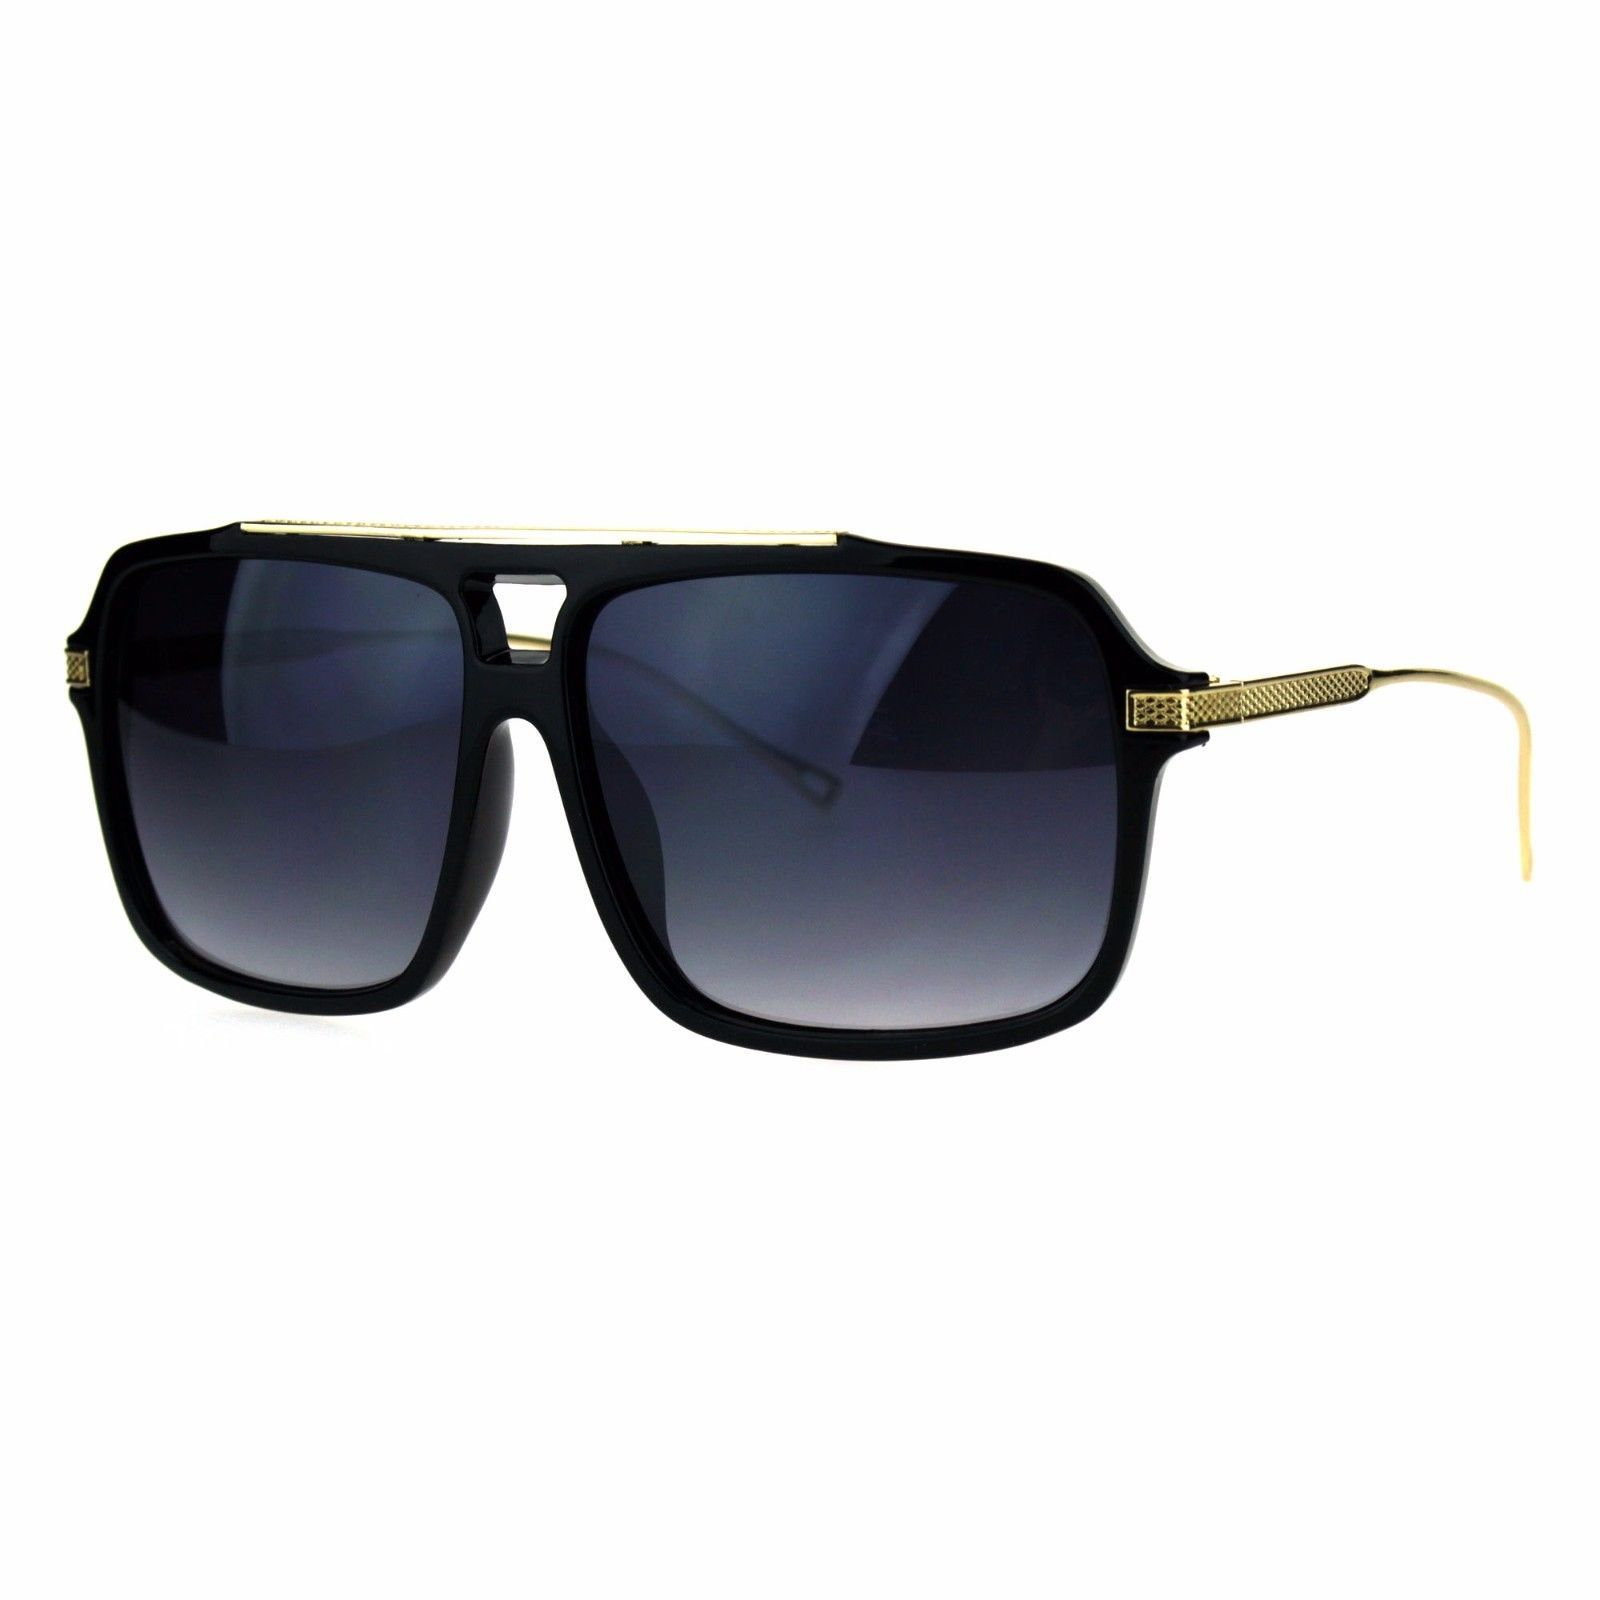 Designer Style Sunglasses Square Frame Unisex Fashion Shades UV 400